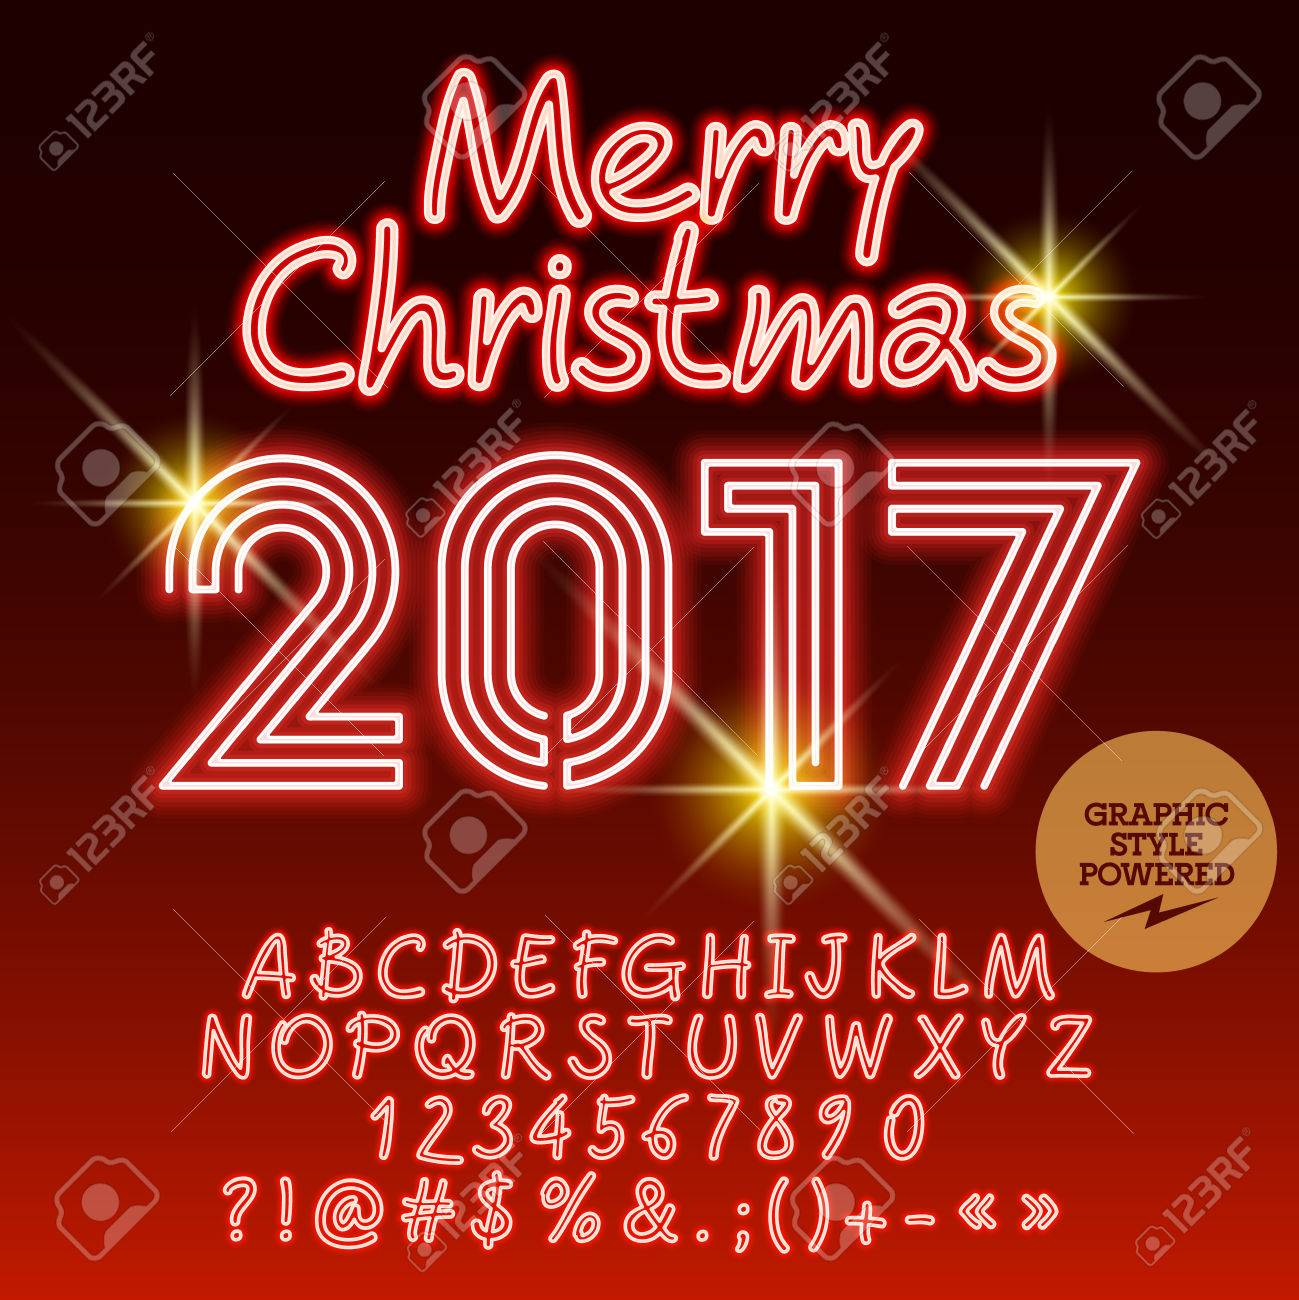 Vector Light Up Merry Christmas 2017 Greeting Card With Set Of